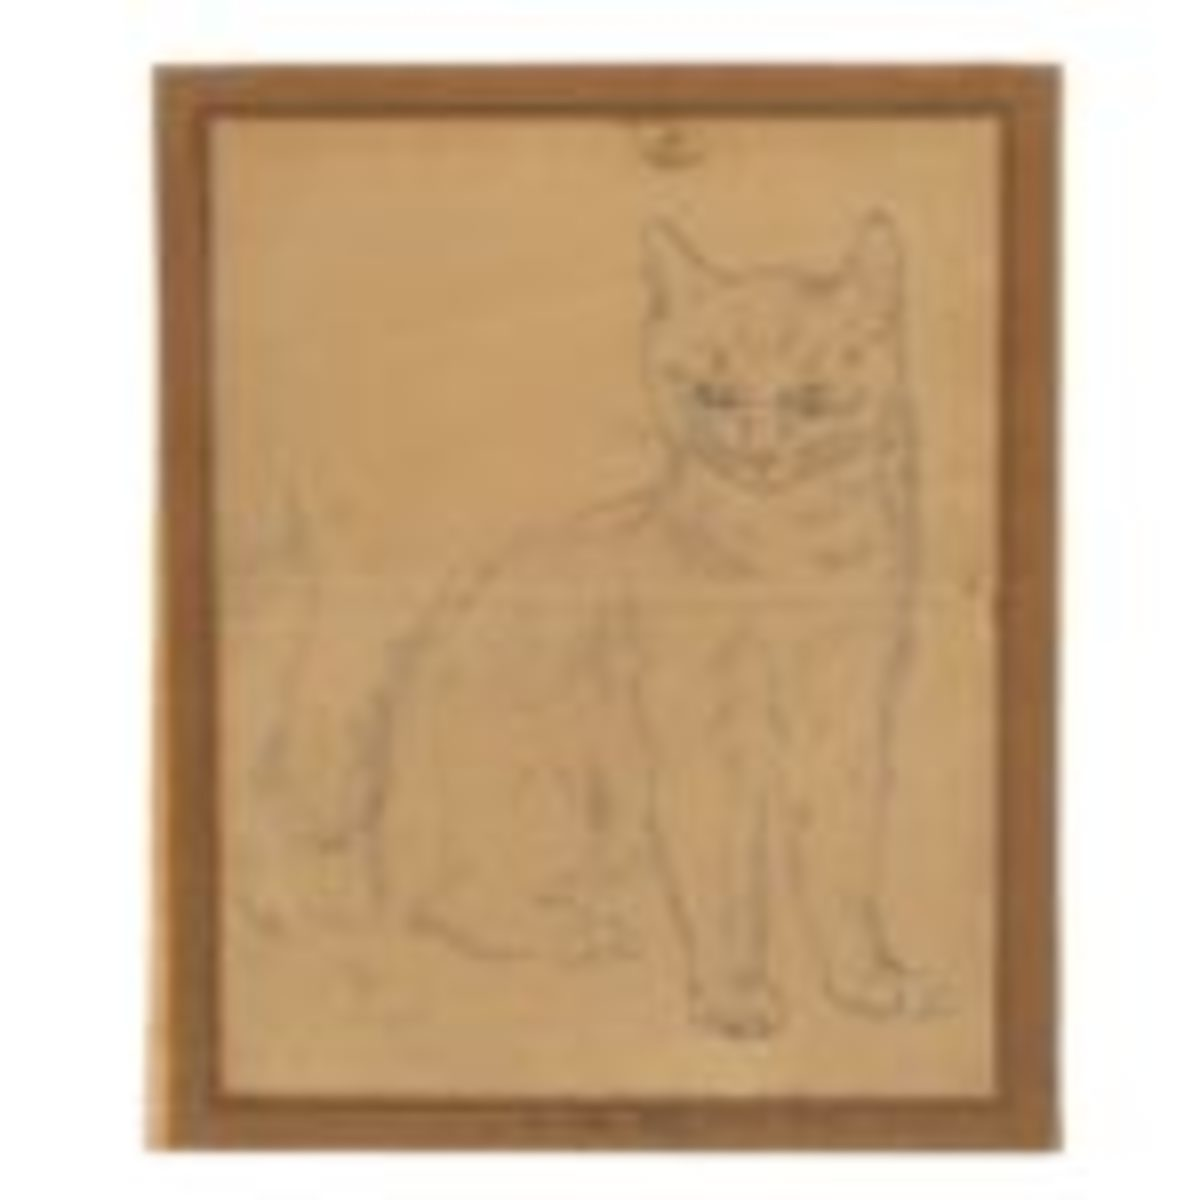 Léonard Tsuguharu Foujita (Japanese-French, 1886-1968), Staring cat, circa 1930, pencil drawing on paper, $2,000-$4,000. Photo courtesy Andrew Jones Auctions